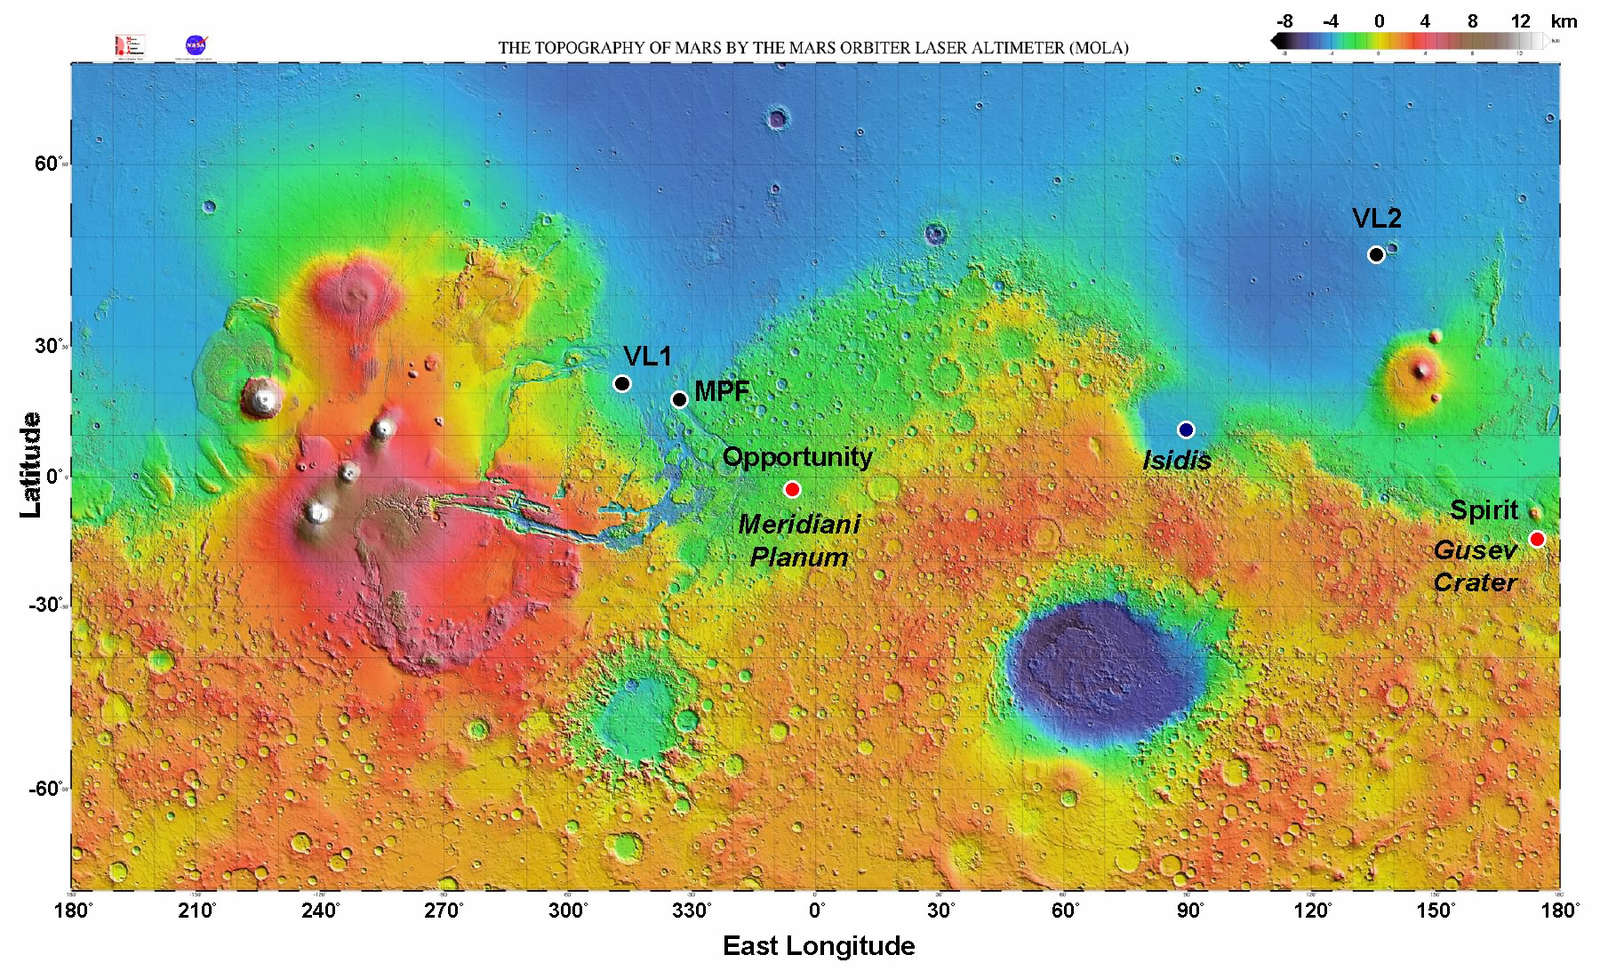 Locations of landers and rovers on Mars.